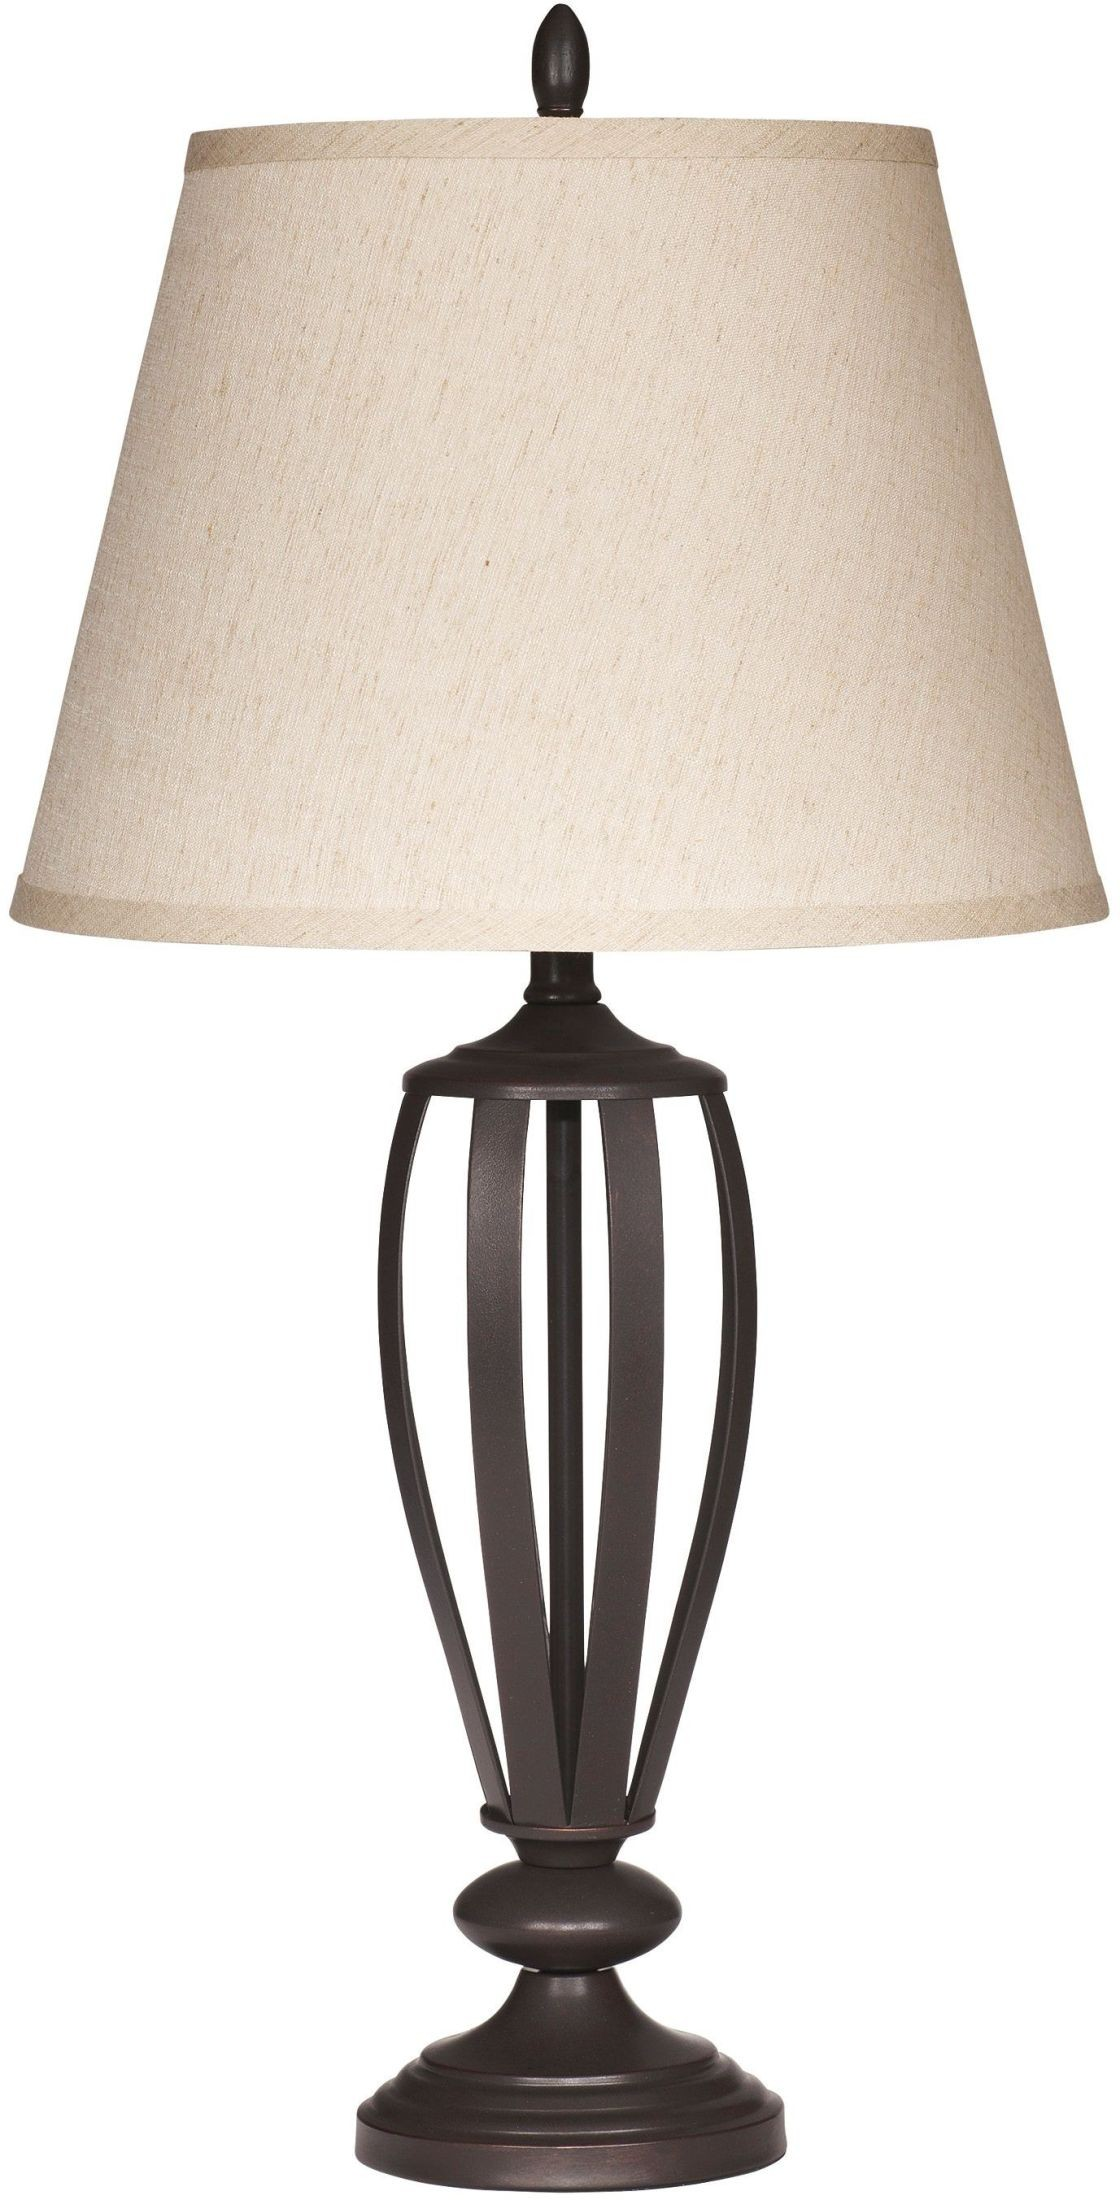 Mildred Table Lamp Set Of 2 From Ashley L201944